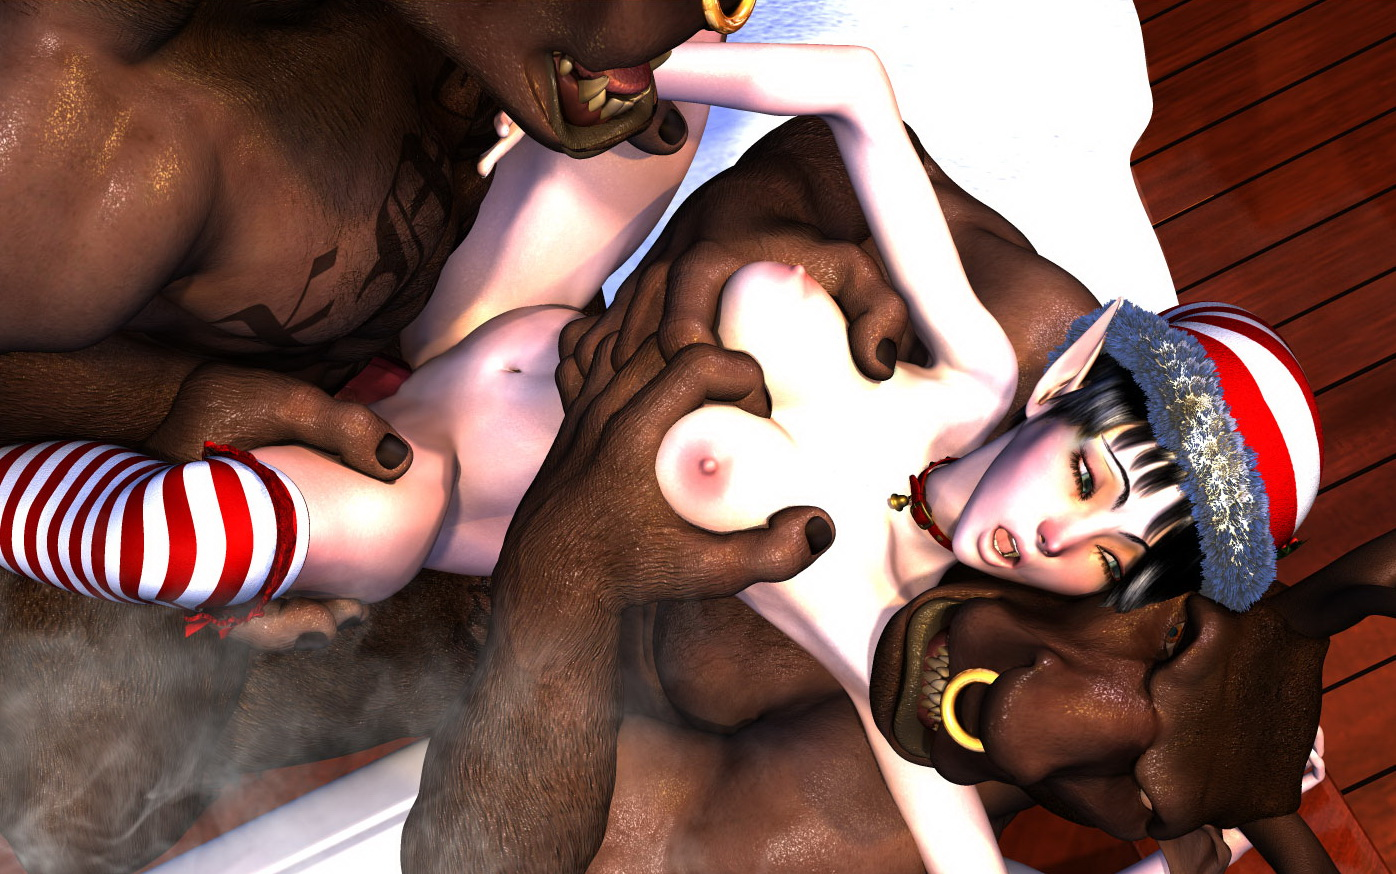 3d hentai pixie gif xxx videos